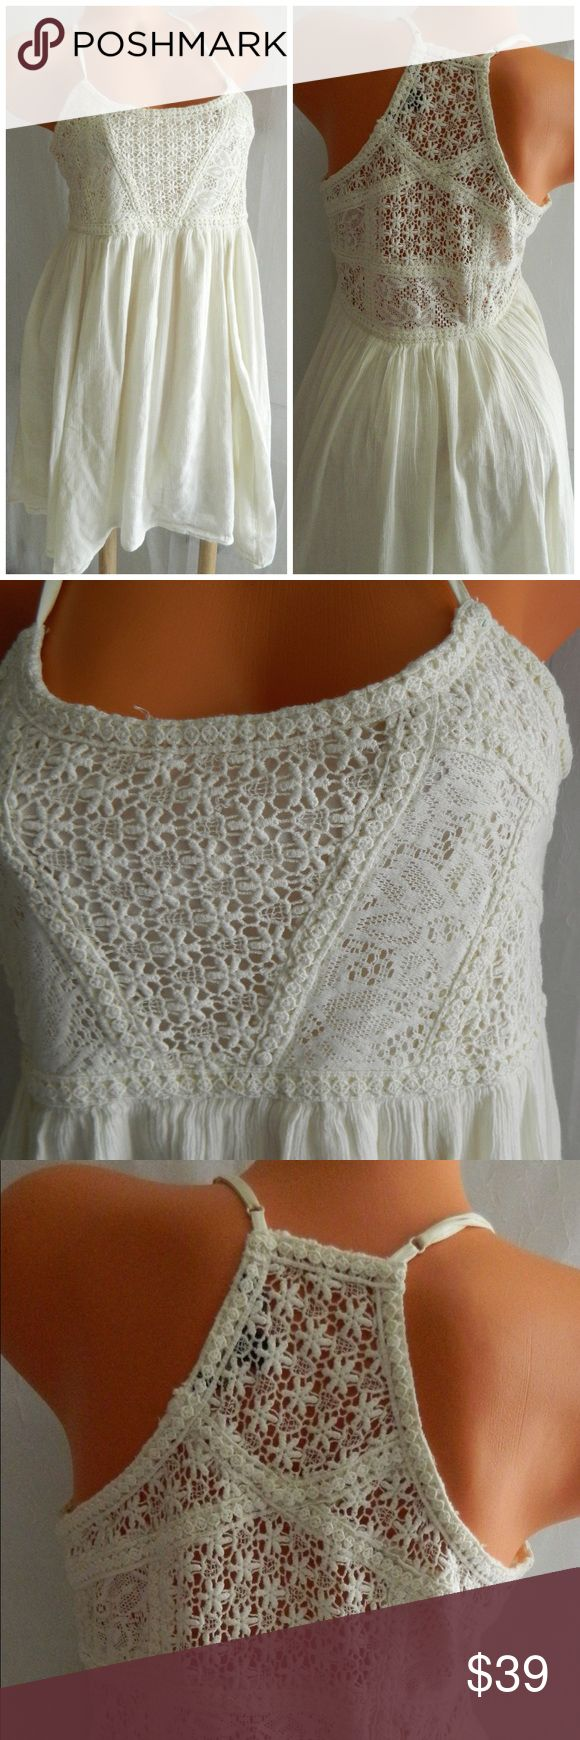 AMERICAN EAGLE Lace DRESS Boho Festival Gypsy In gentle pre-owned condition American Eagle Outfitters Dresses